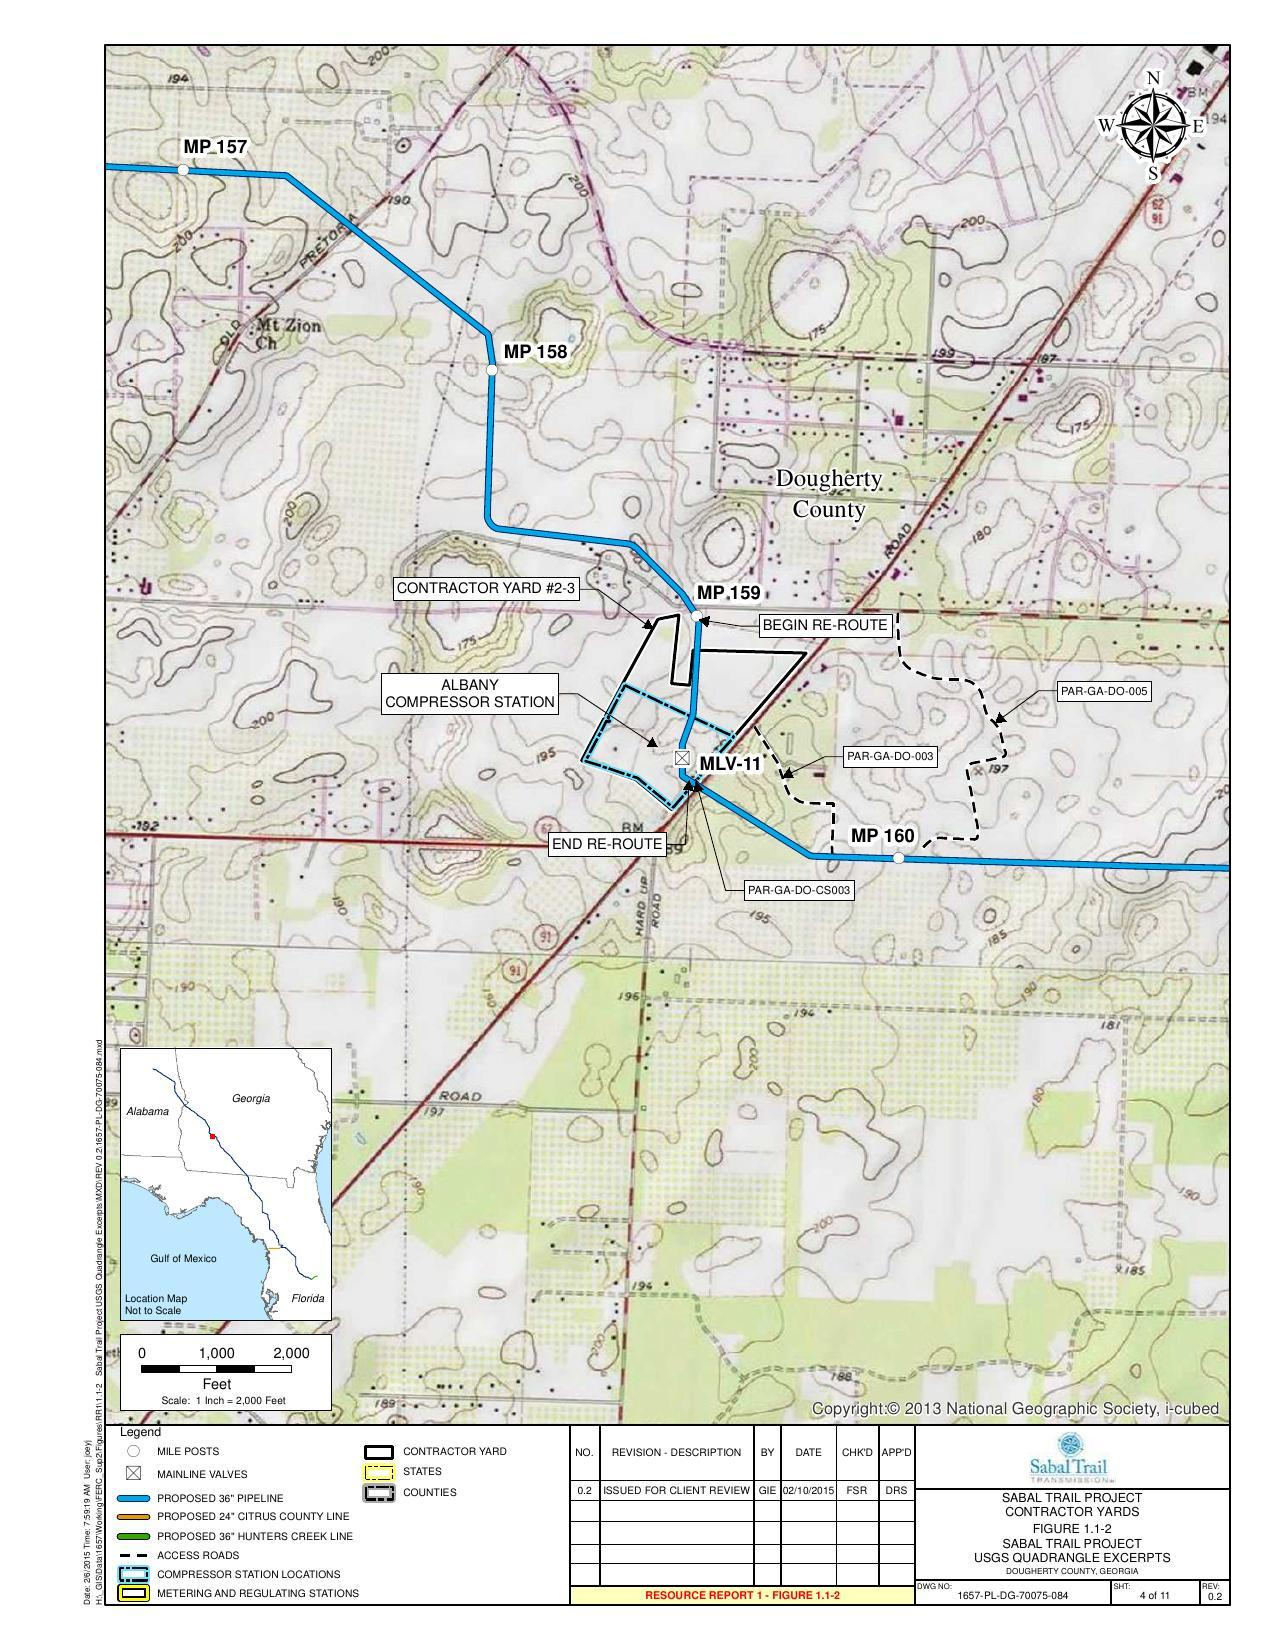 1275x1650 Dougherty County, GA Compressor Station, CONTRACTOR YARD #2-3, in Sabal Trail Contractor Yards, by John S. Quarterman, for SpectraBusters.org, 20 February 2015